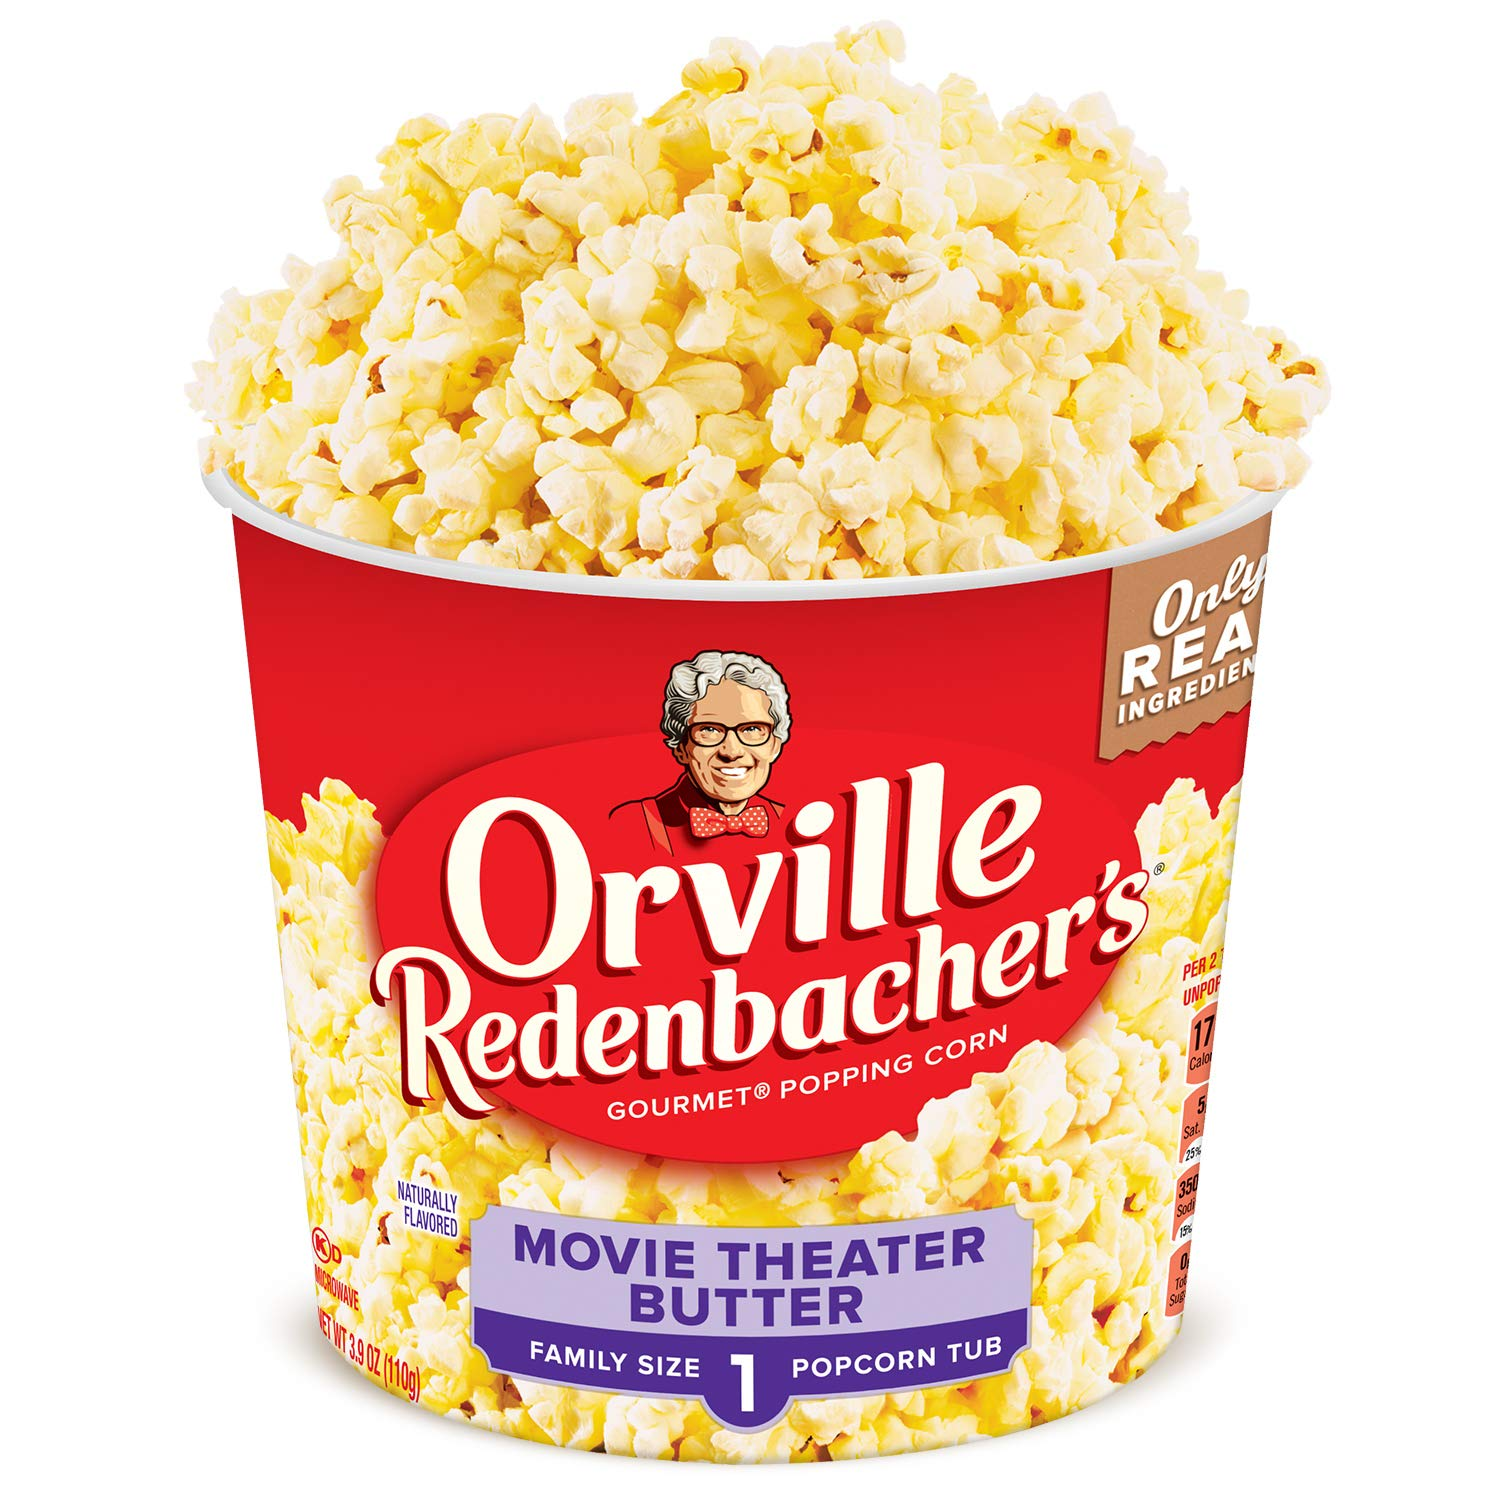 Amazon Com Orville Redenbacher S Movie Theater Butter Popcorn Tub 3 9 Ounce Pack Of 12 Microwave Popcorn Grocery Gourmet Food